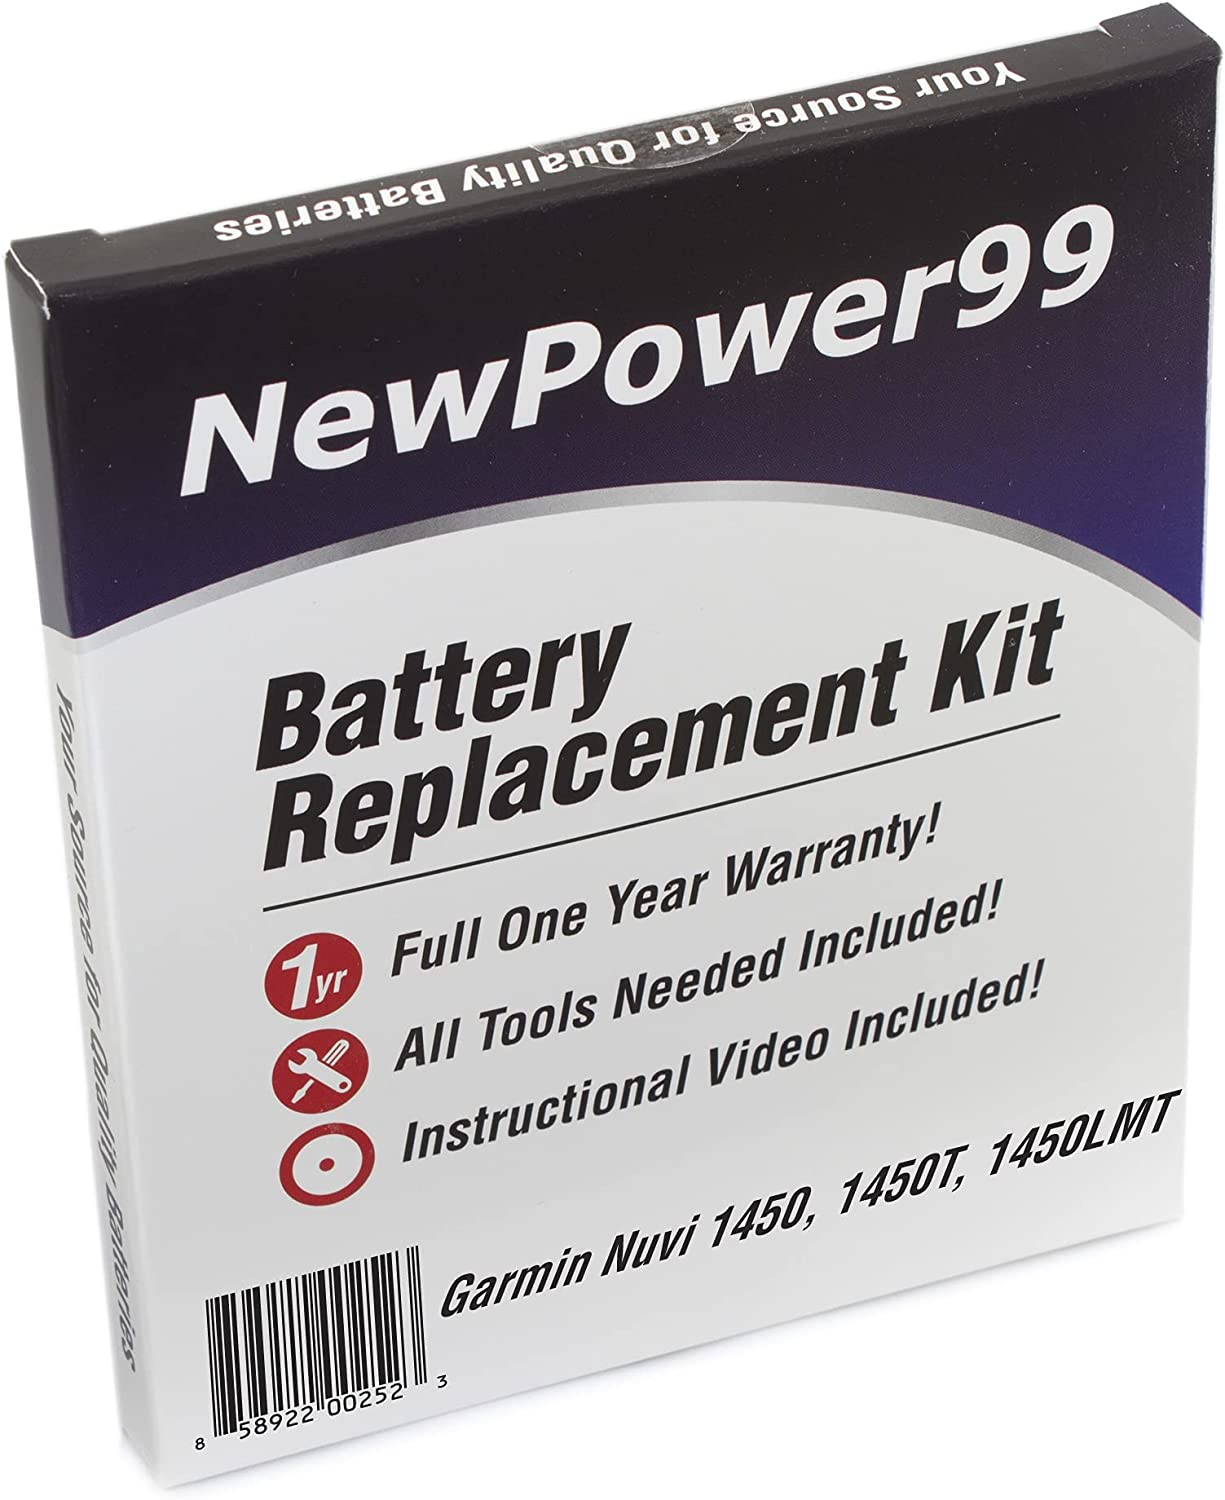 NewPower99 Minneapolis Mall Battery Replacement Kit for At the price 1450T 1450 Garmin Nuvi